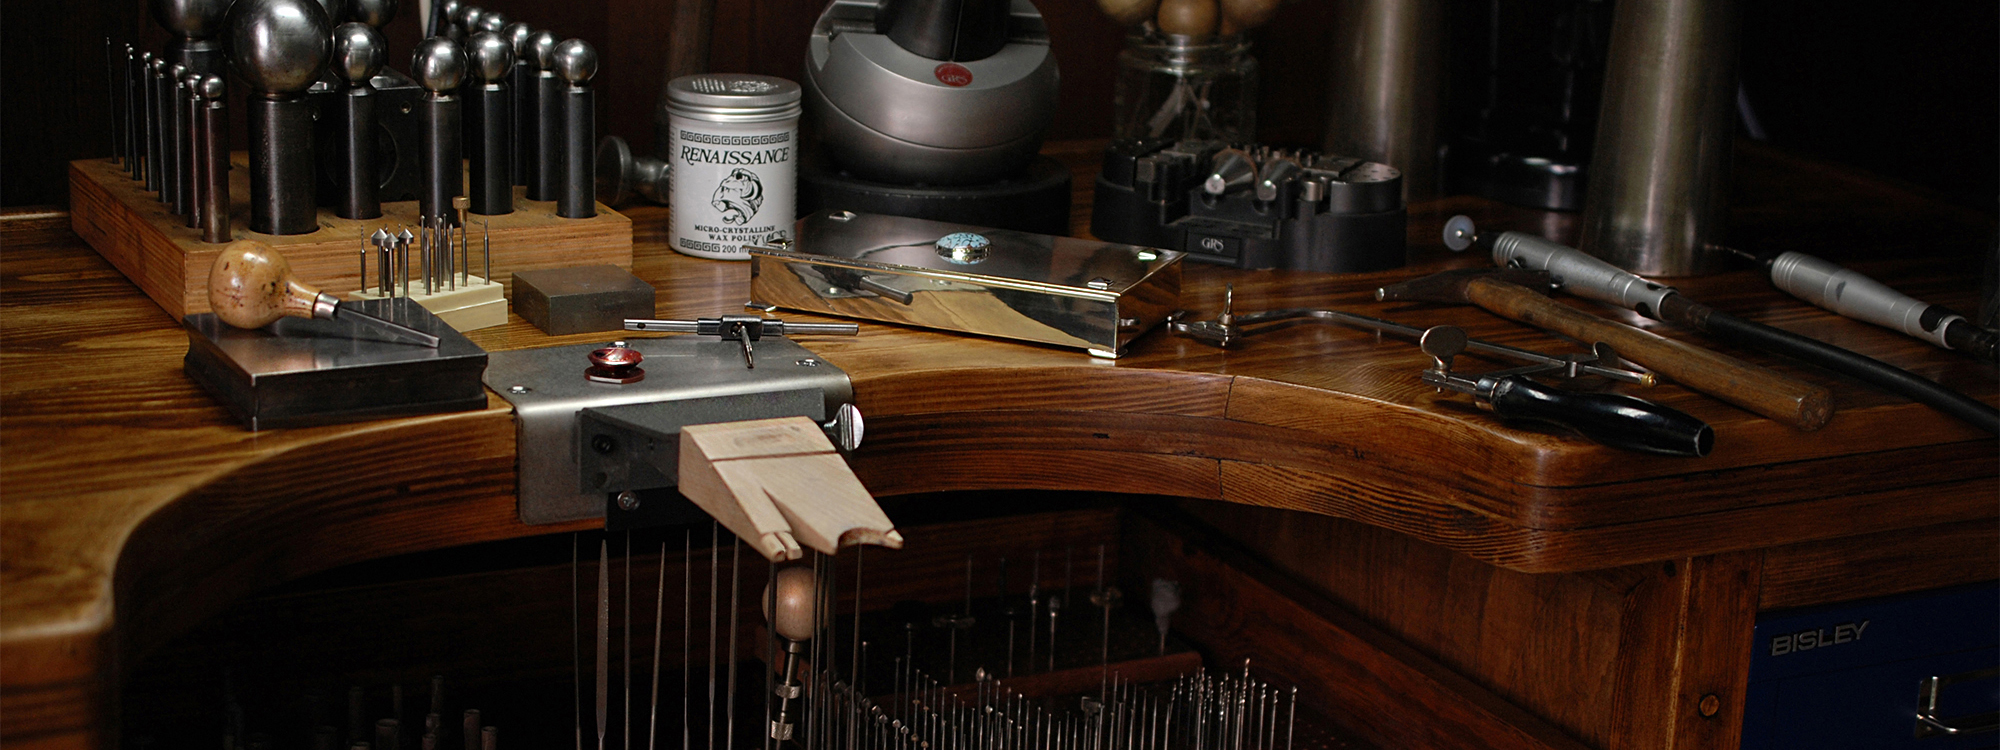 Tarvier jewellers workbench